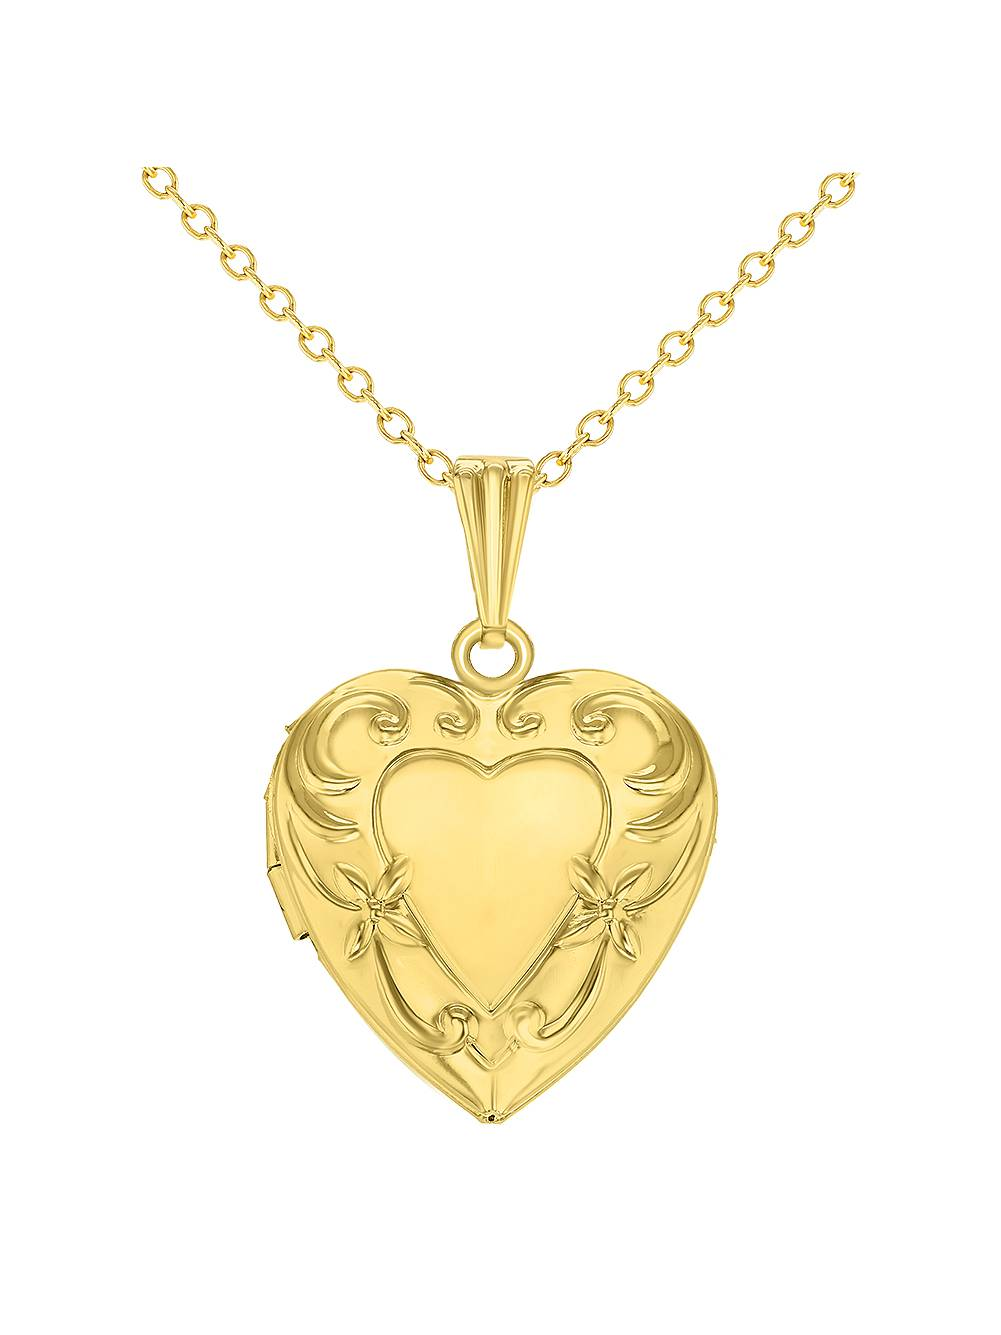 Love Heart Girls Locket Pendant Necklace Memories Teen Kids 16""